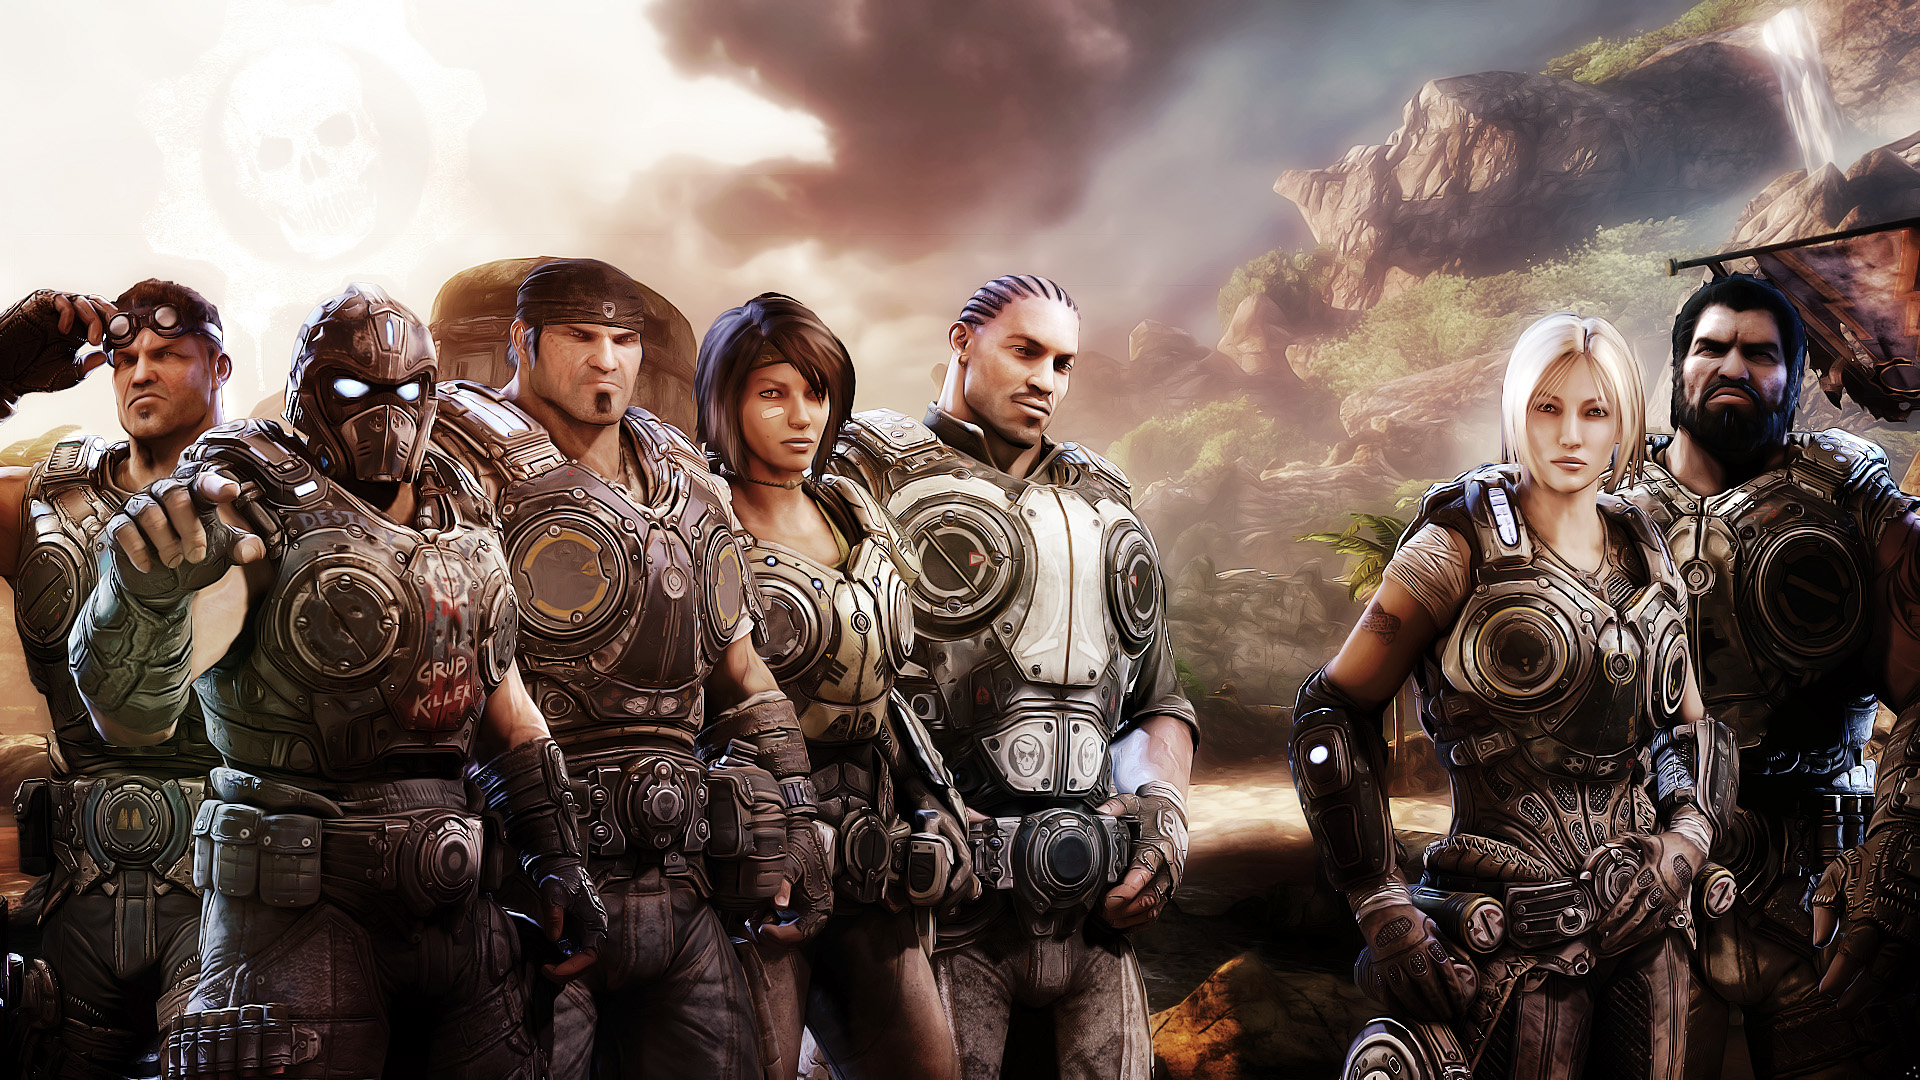 Gears of War 3 Xbox Game Wallpapers HD Wallpapers 1920x1080